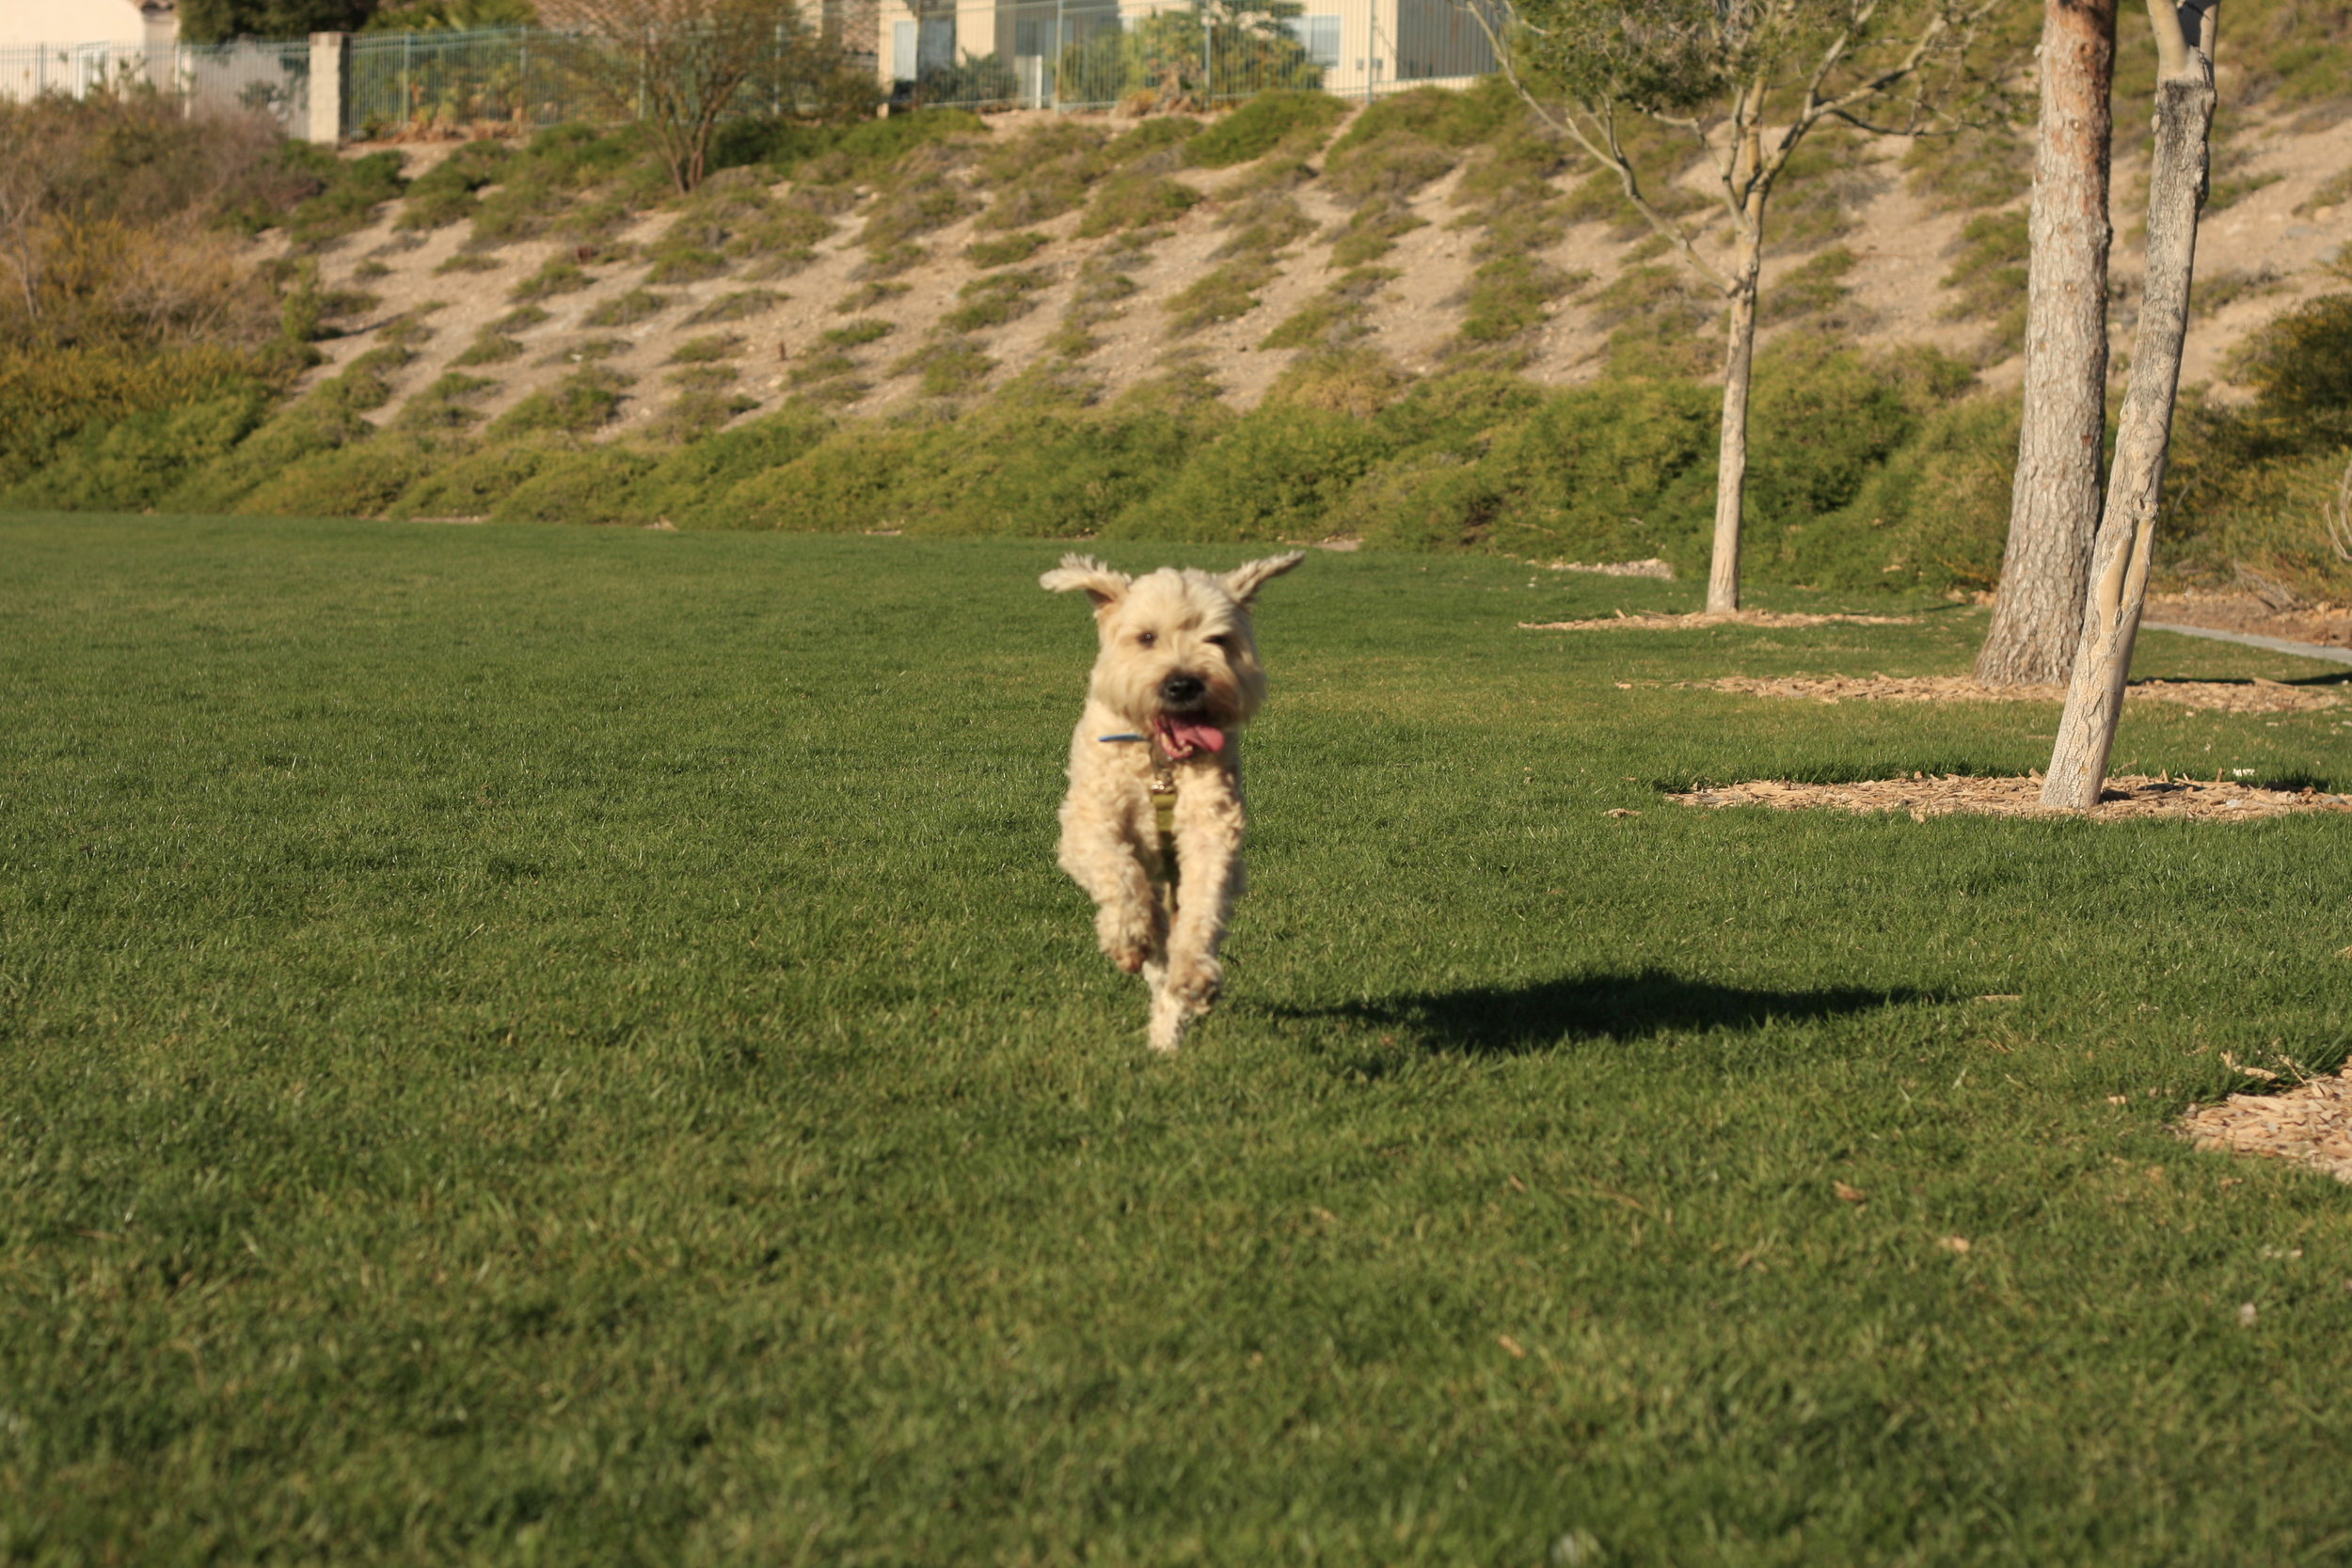 Tucker - CGC TDI HIC NAC SDSoft coated wheaten terrier1996- 2013